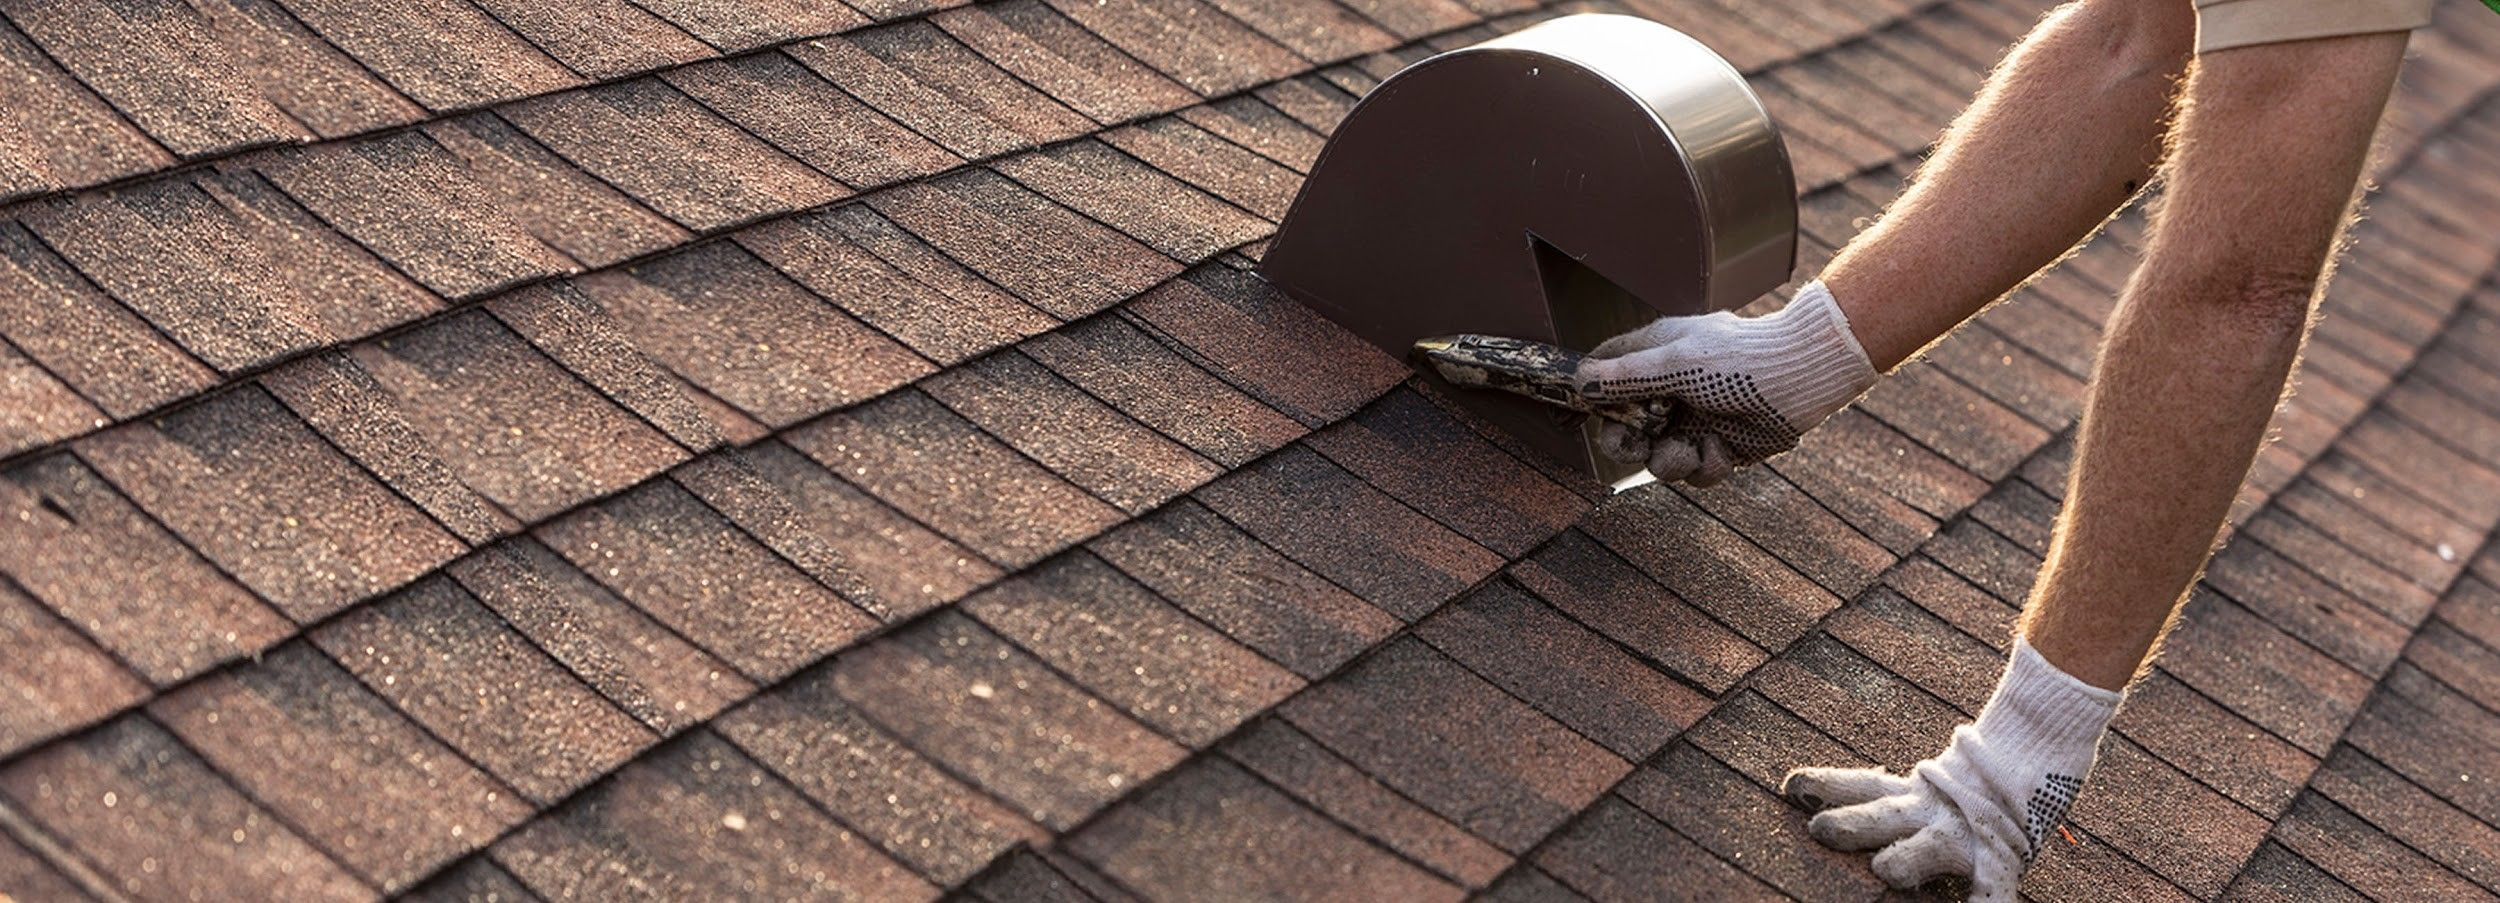 All Roofs Eventually Wear Down Over Time If You Re Noticing Changes On Your Rooftop Or If You Suspect Something Is Wr Roofing Contractors Roof Repair Roofing